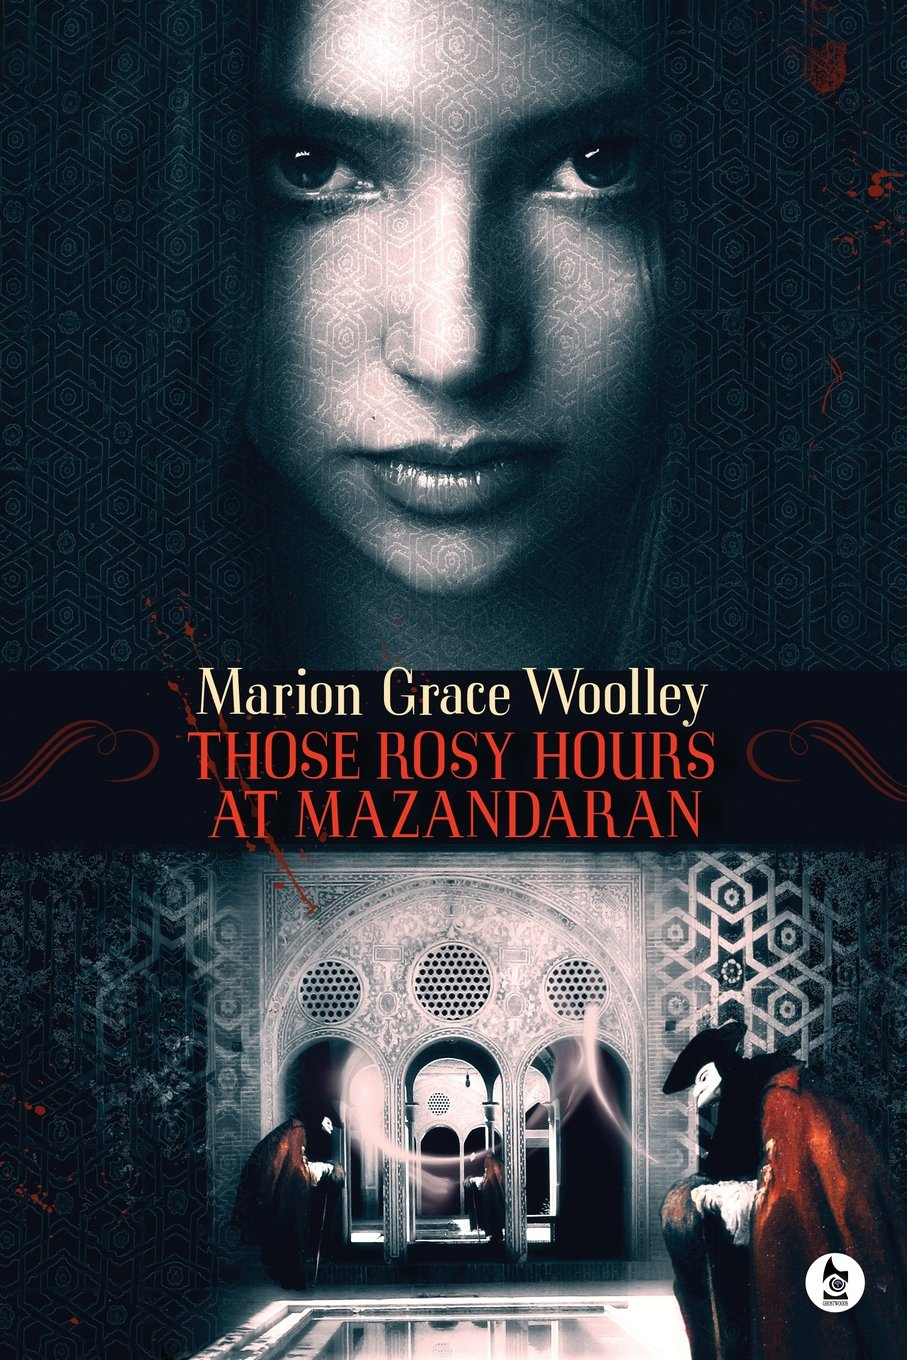 Marion Grace Woolley: Five Things I Learned Writing Those Rosy Hours At Mazandaran